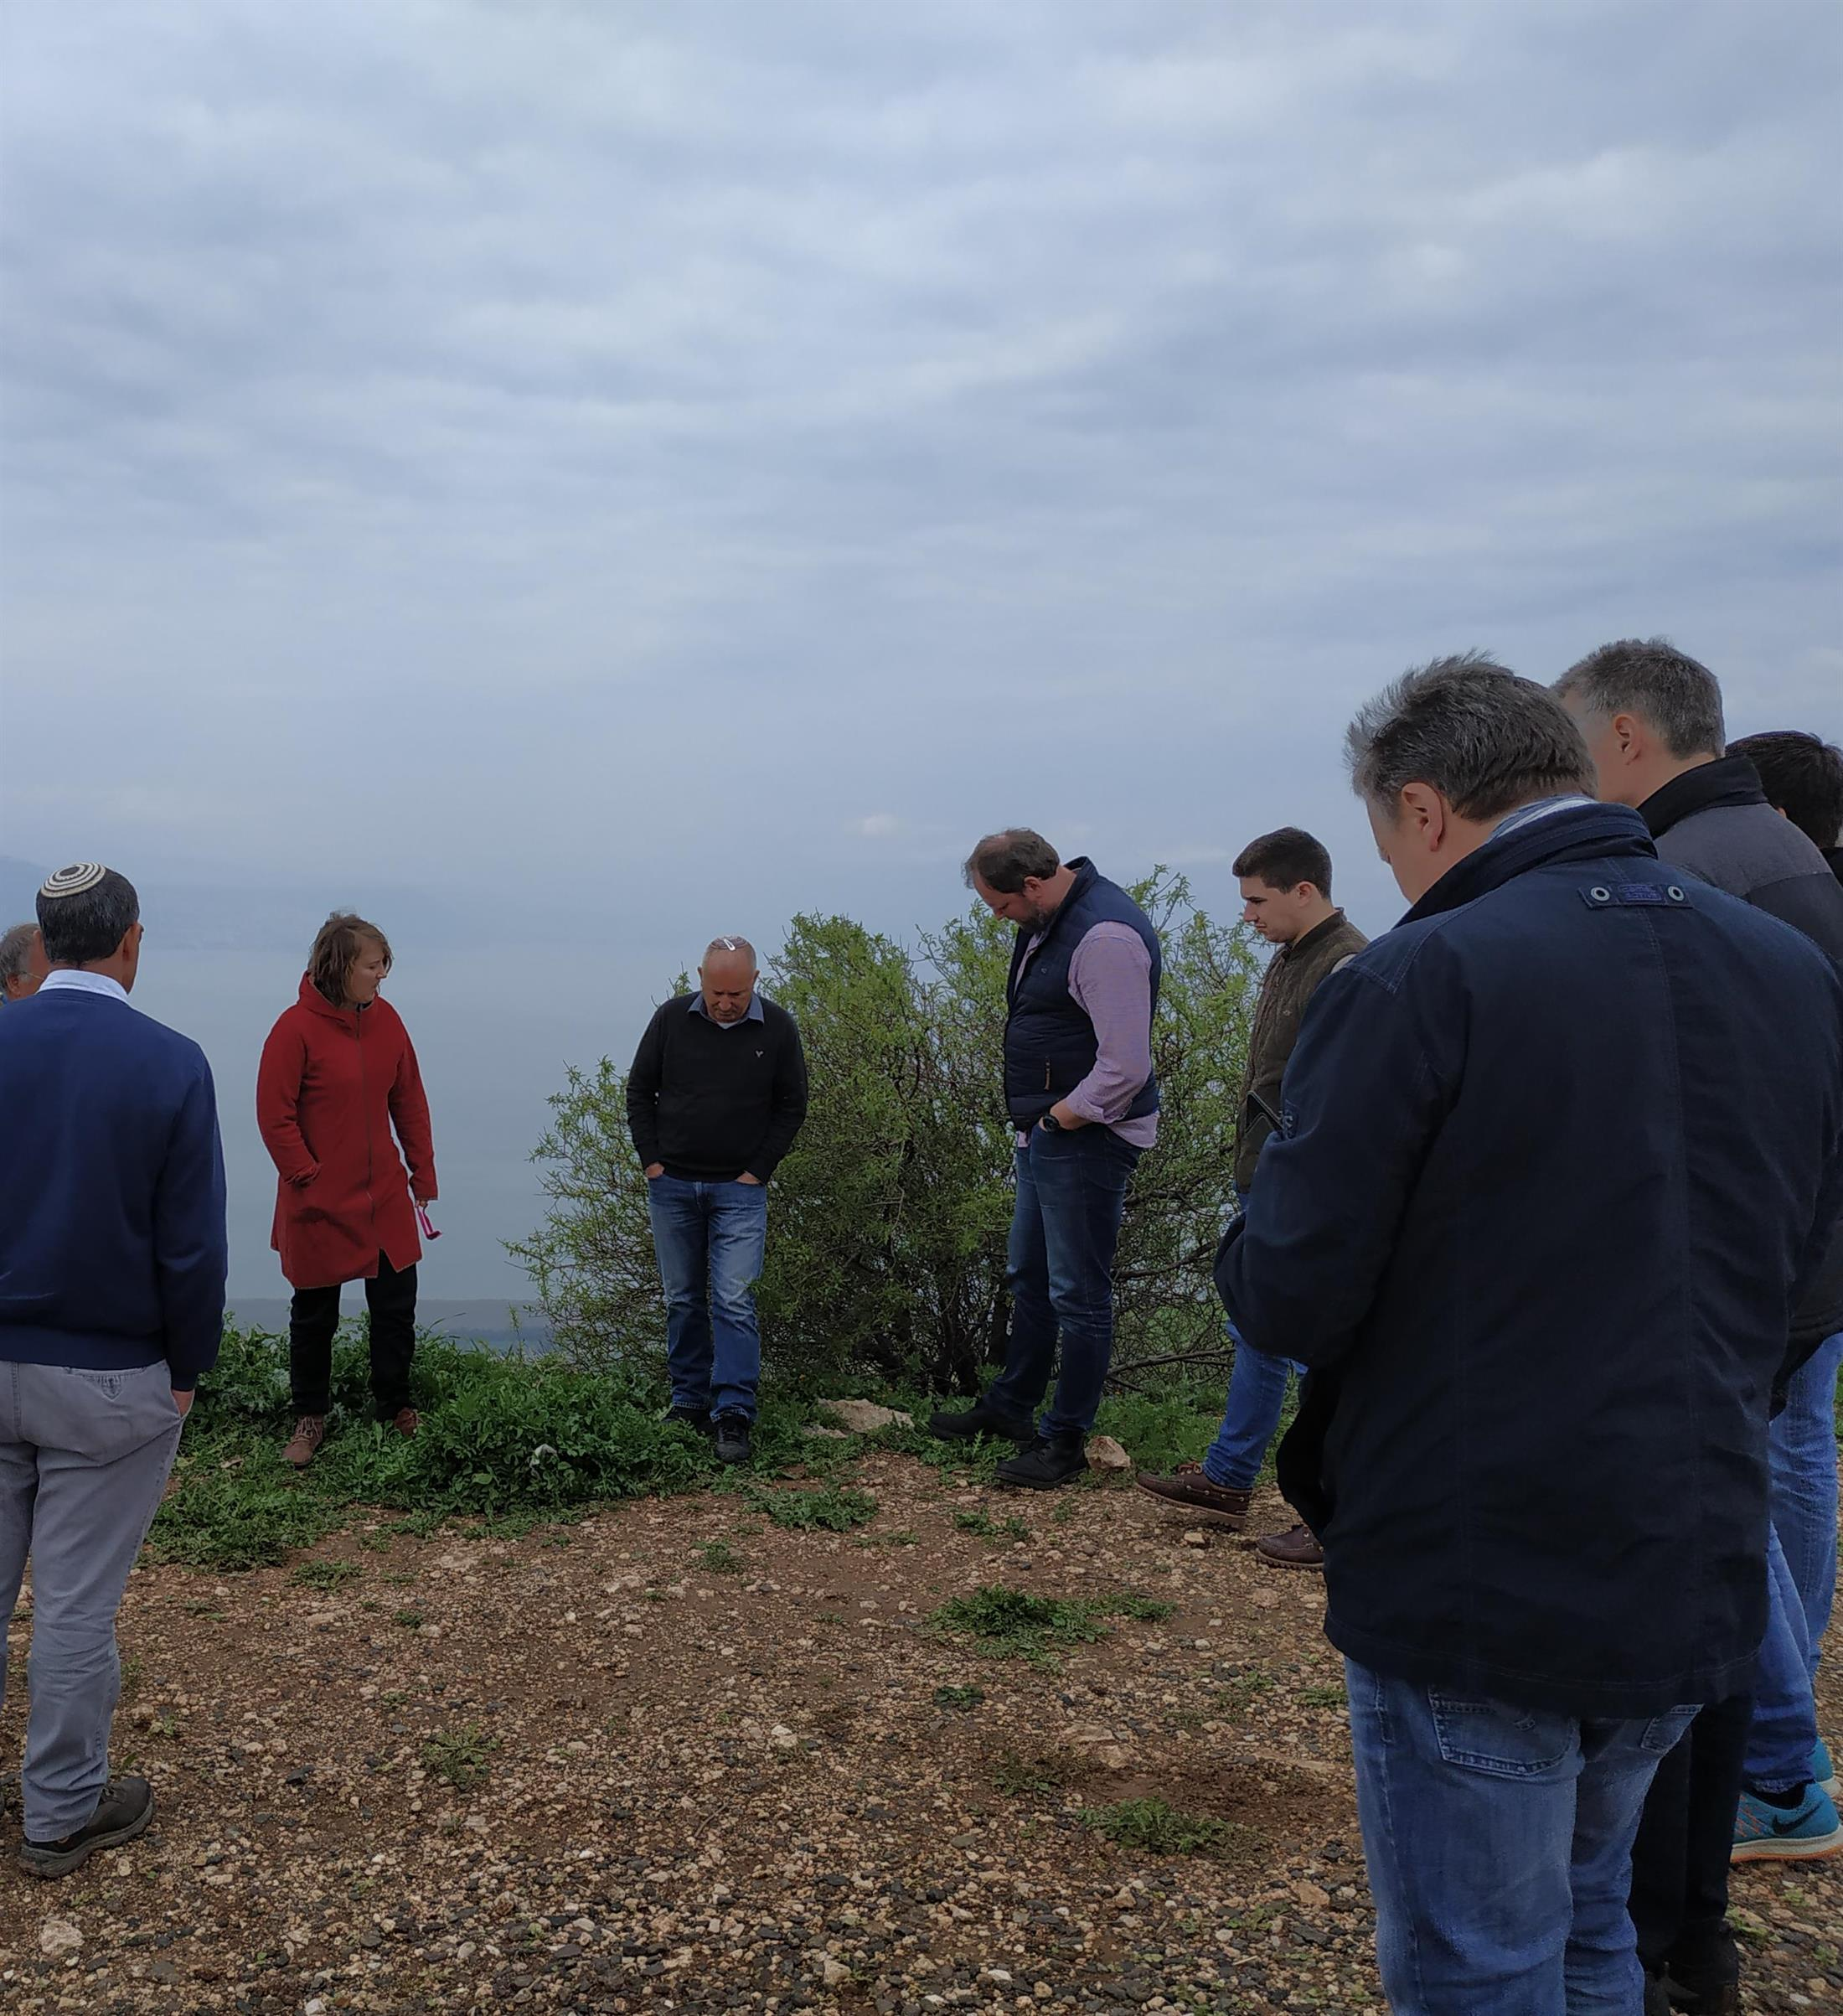 Water and agriculture tour in the Golan - growers and suppliers Carrot from Germany, 3.3.19